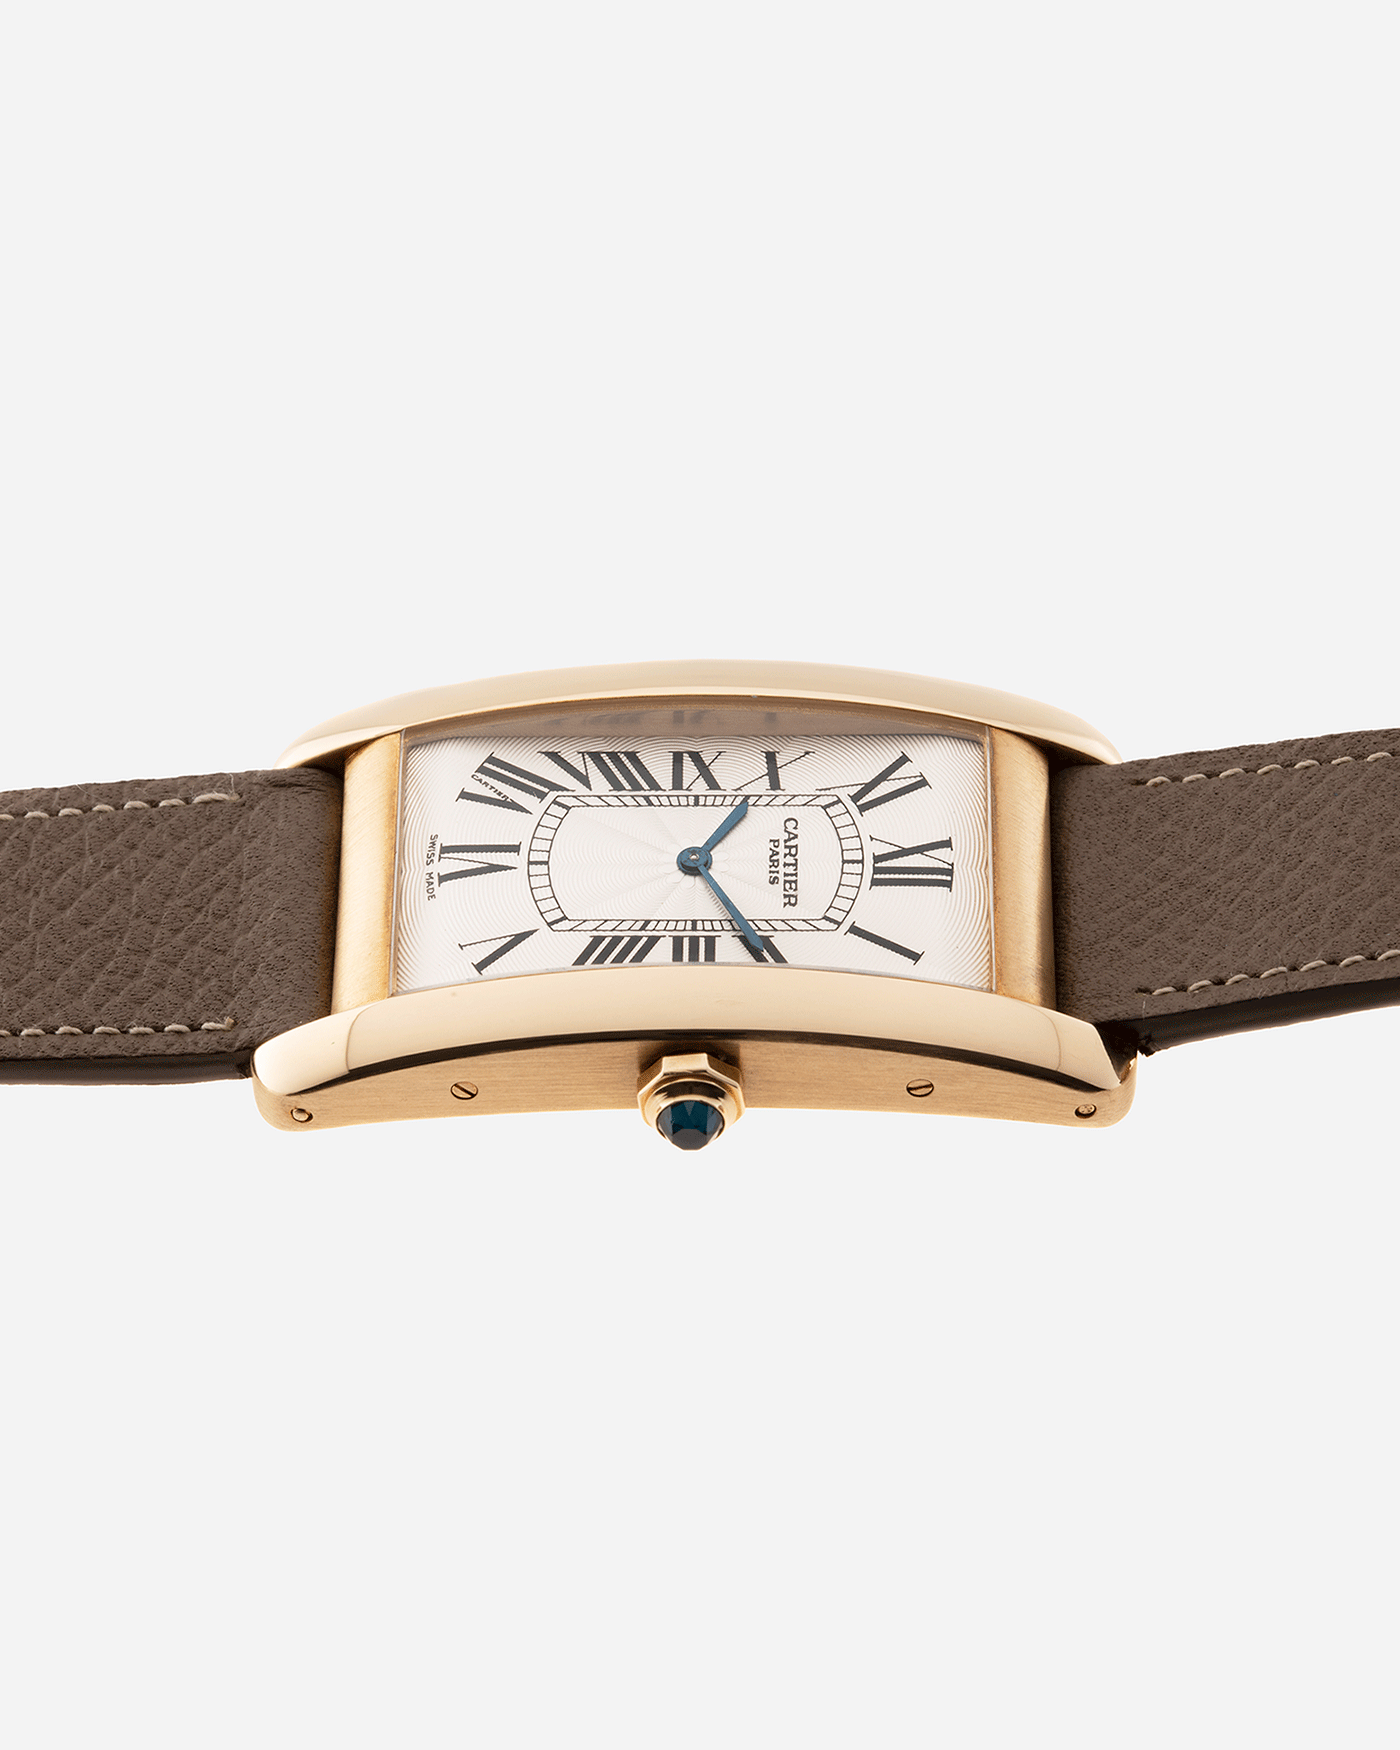 Brand: Cartier Year: 1999 Model: CPCP Collection Prive Tank Americaine Reference: 1737 Material: 18k Yellow Gold Movement: Cartier Caliber 430 MC Case Diameter: 45mmX26mm Strap: Nostime Taupe Grained Calf